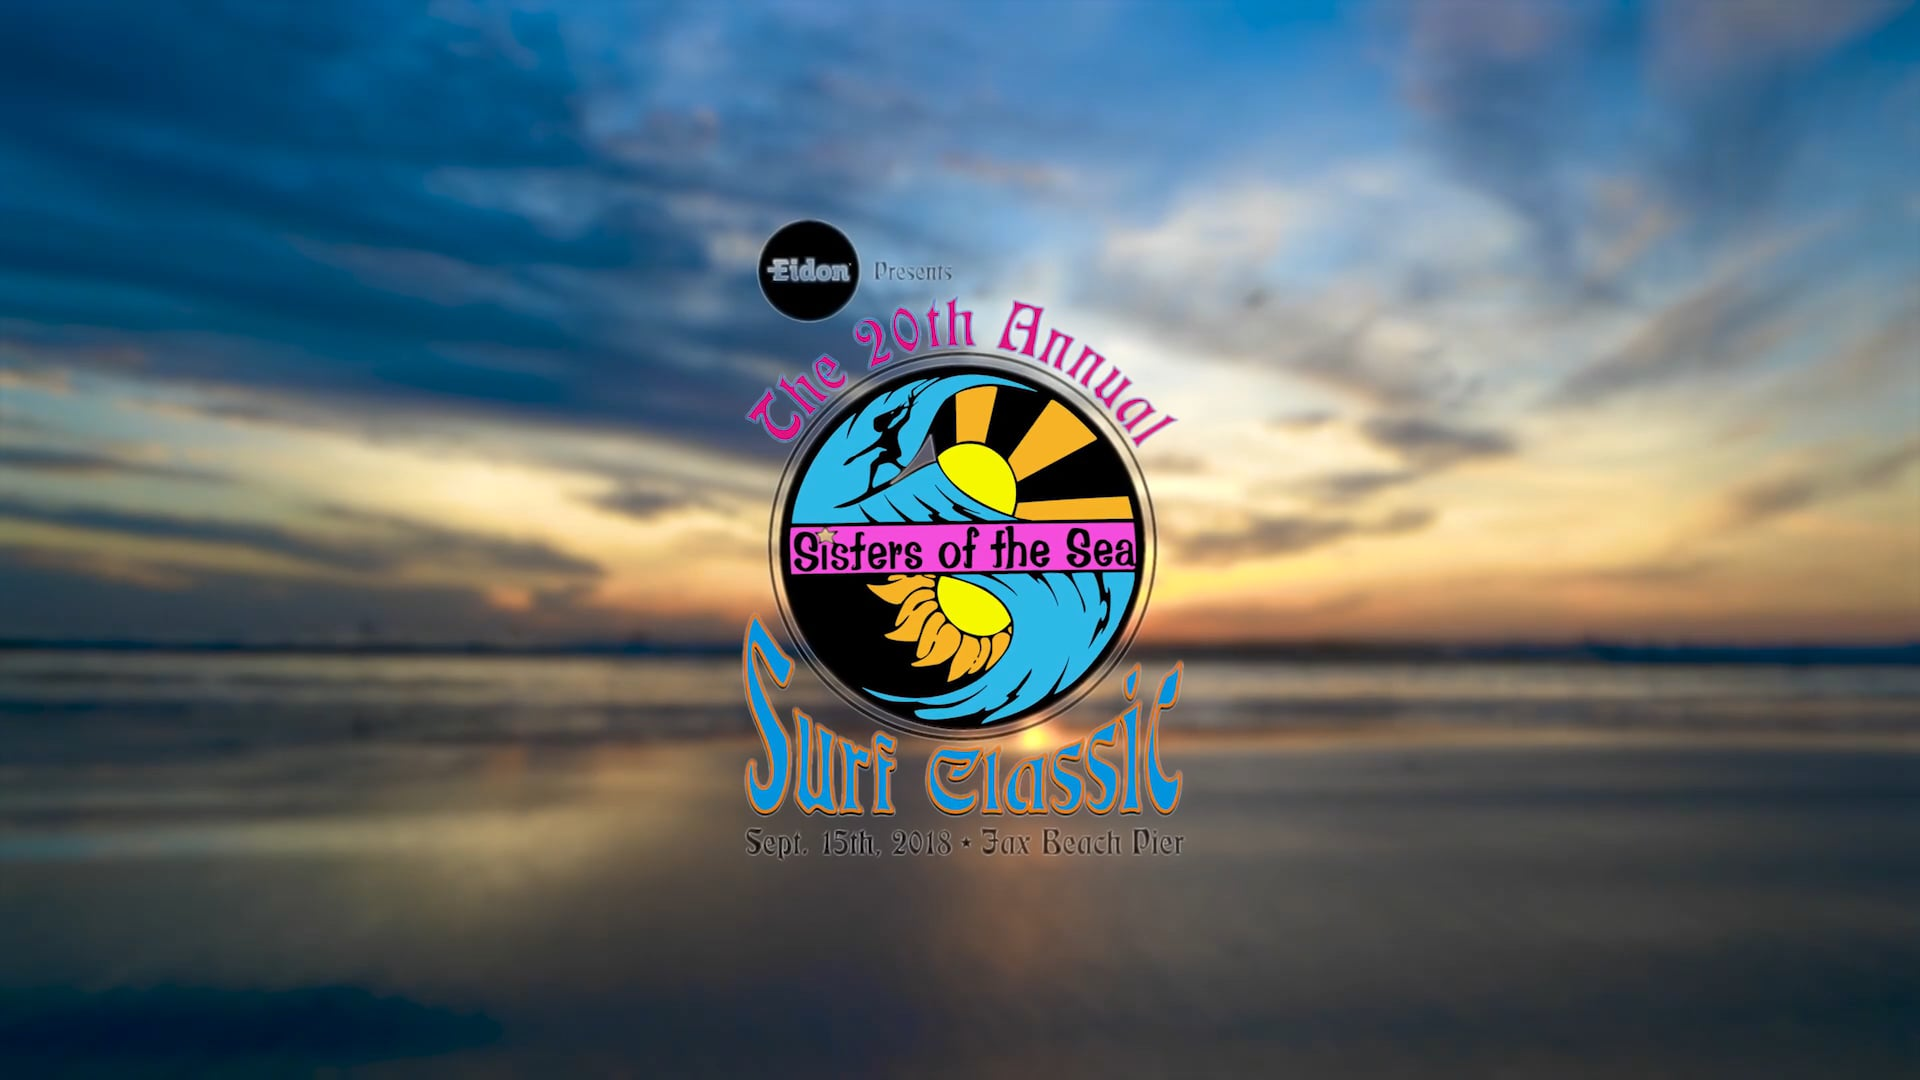 2018 Sisters of the Sea Surf Classic